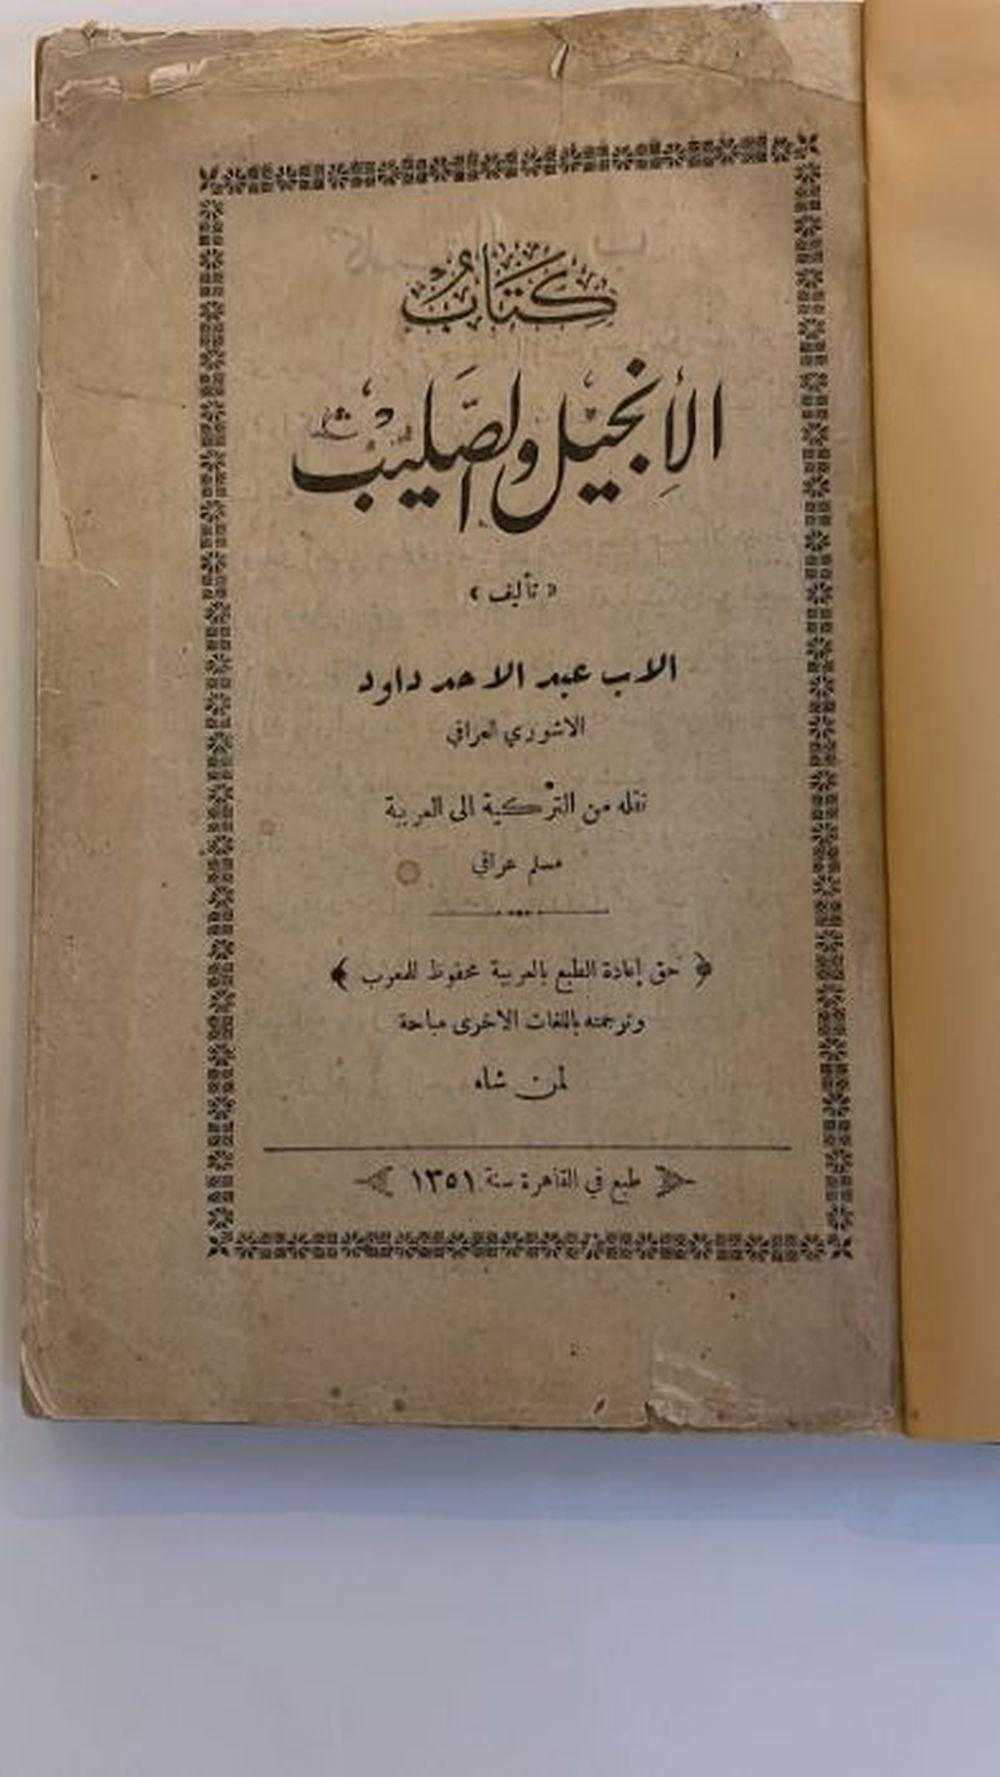 The Gospel & Cross Book Written By Father Abd Al-Ahad Dawood Dated 1351